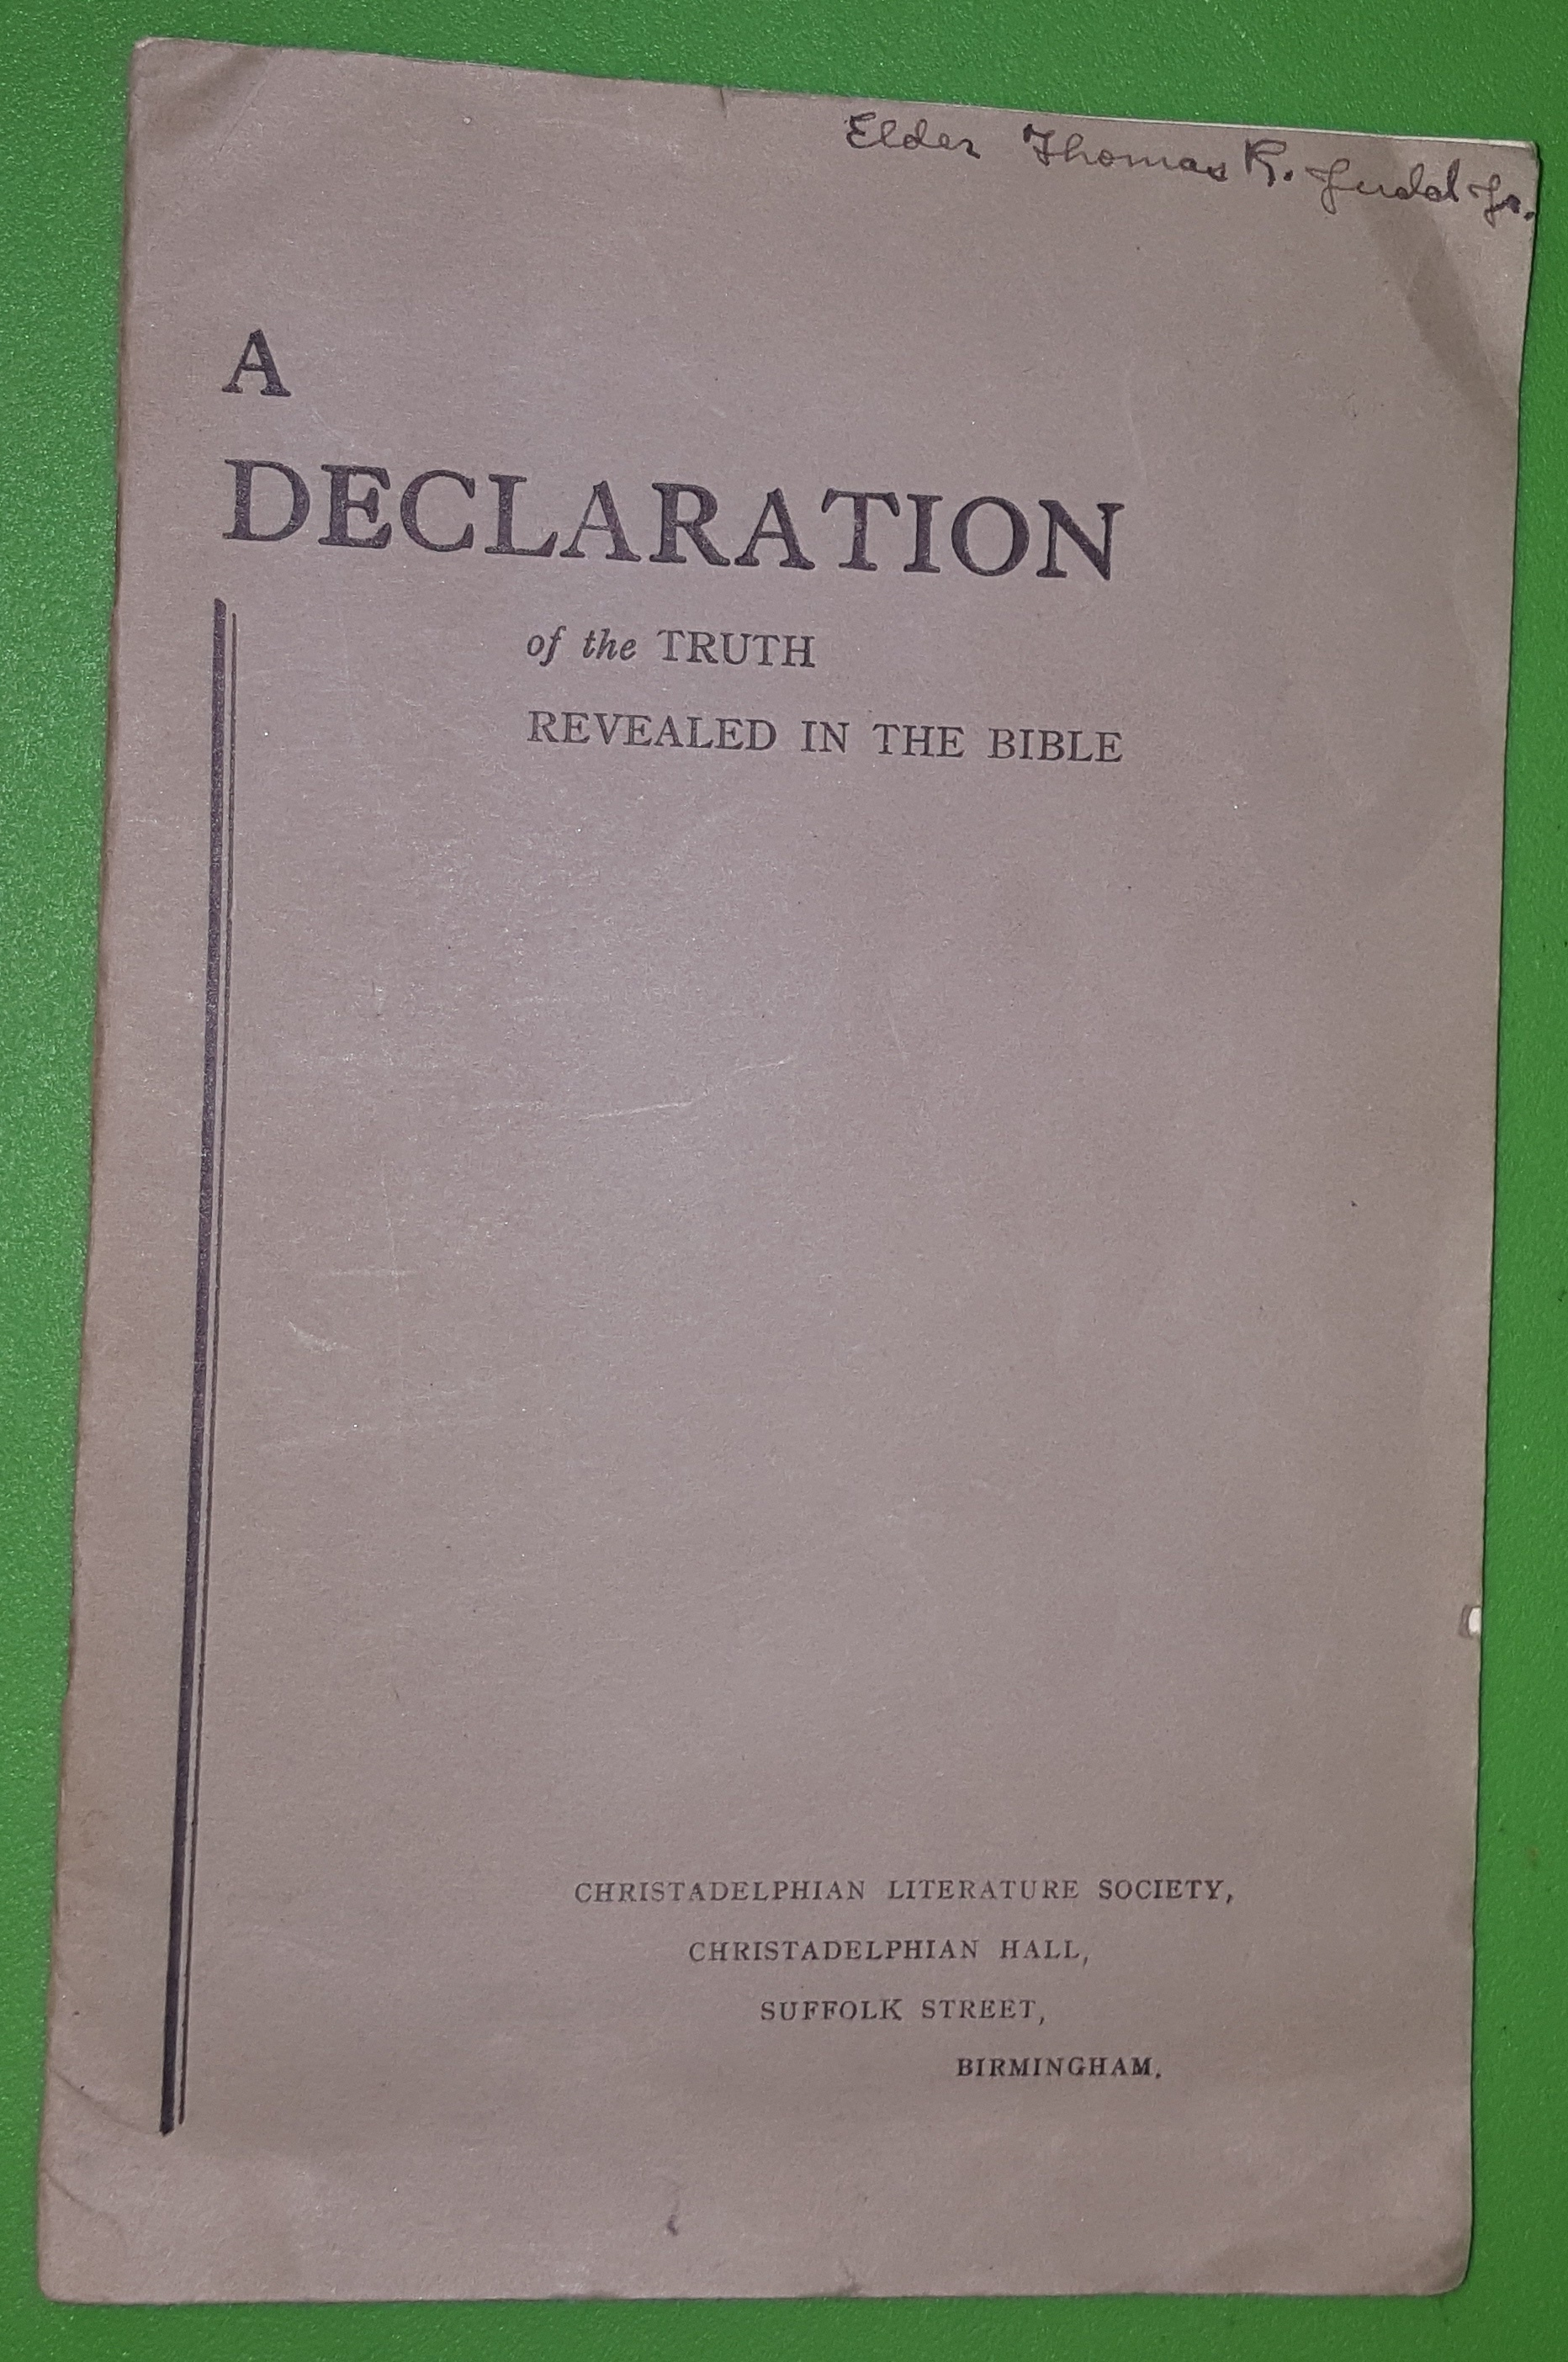 Image for A DECLARATION OF THE TRUTH REVEALED IN THE BIBLE AS DISTINGUISHABLE FROM THE THEOLOGY OF CHRISTENDOM -  SET FORTH IN A SERIES OF PROPOSITIONS, ARRANGED FOR THE PURPOSE OF EXHIBITING THE FAITH PROMULGATED BY THE APOSTLES IN THE FIRST CENTURY